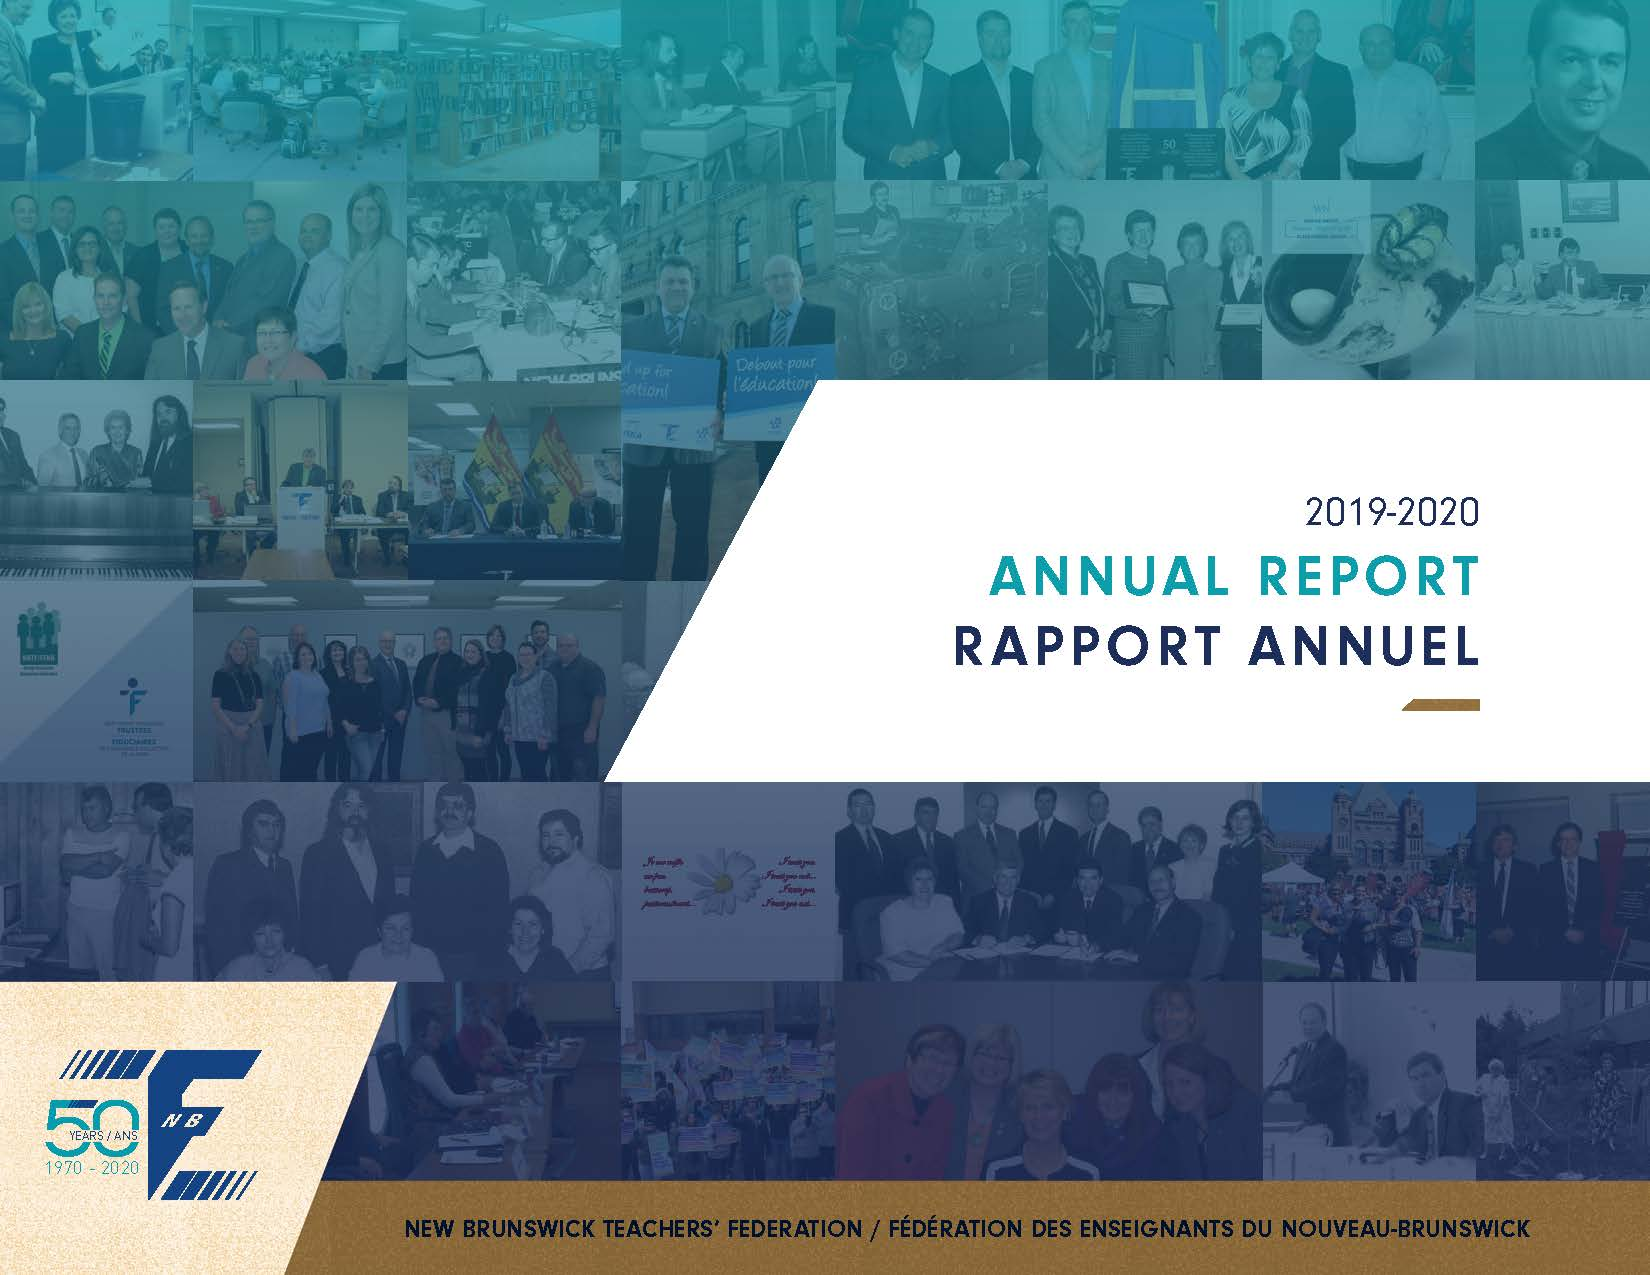 Annual-Report-Rapport-Annuel_2019-2020_Page_01